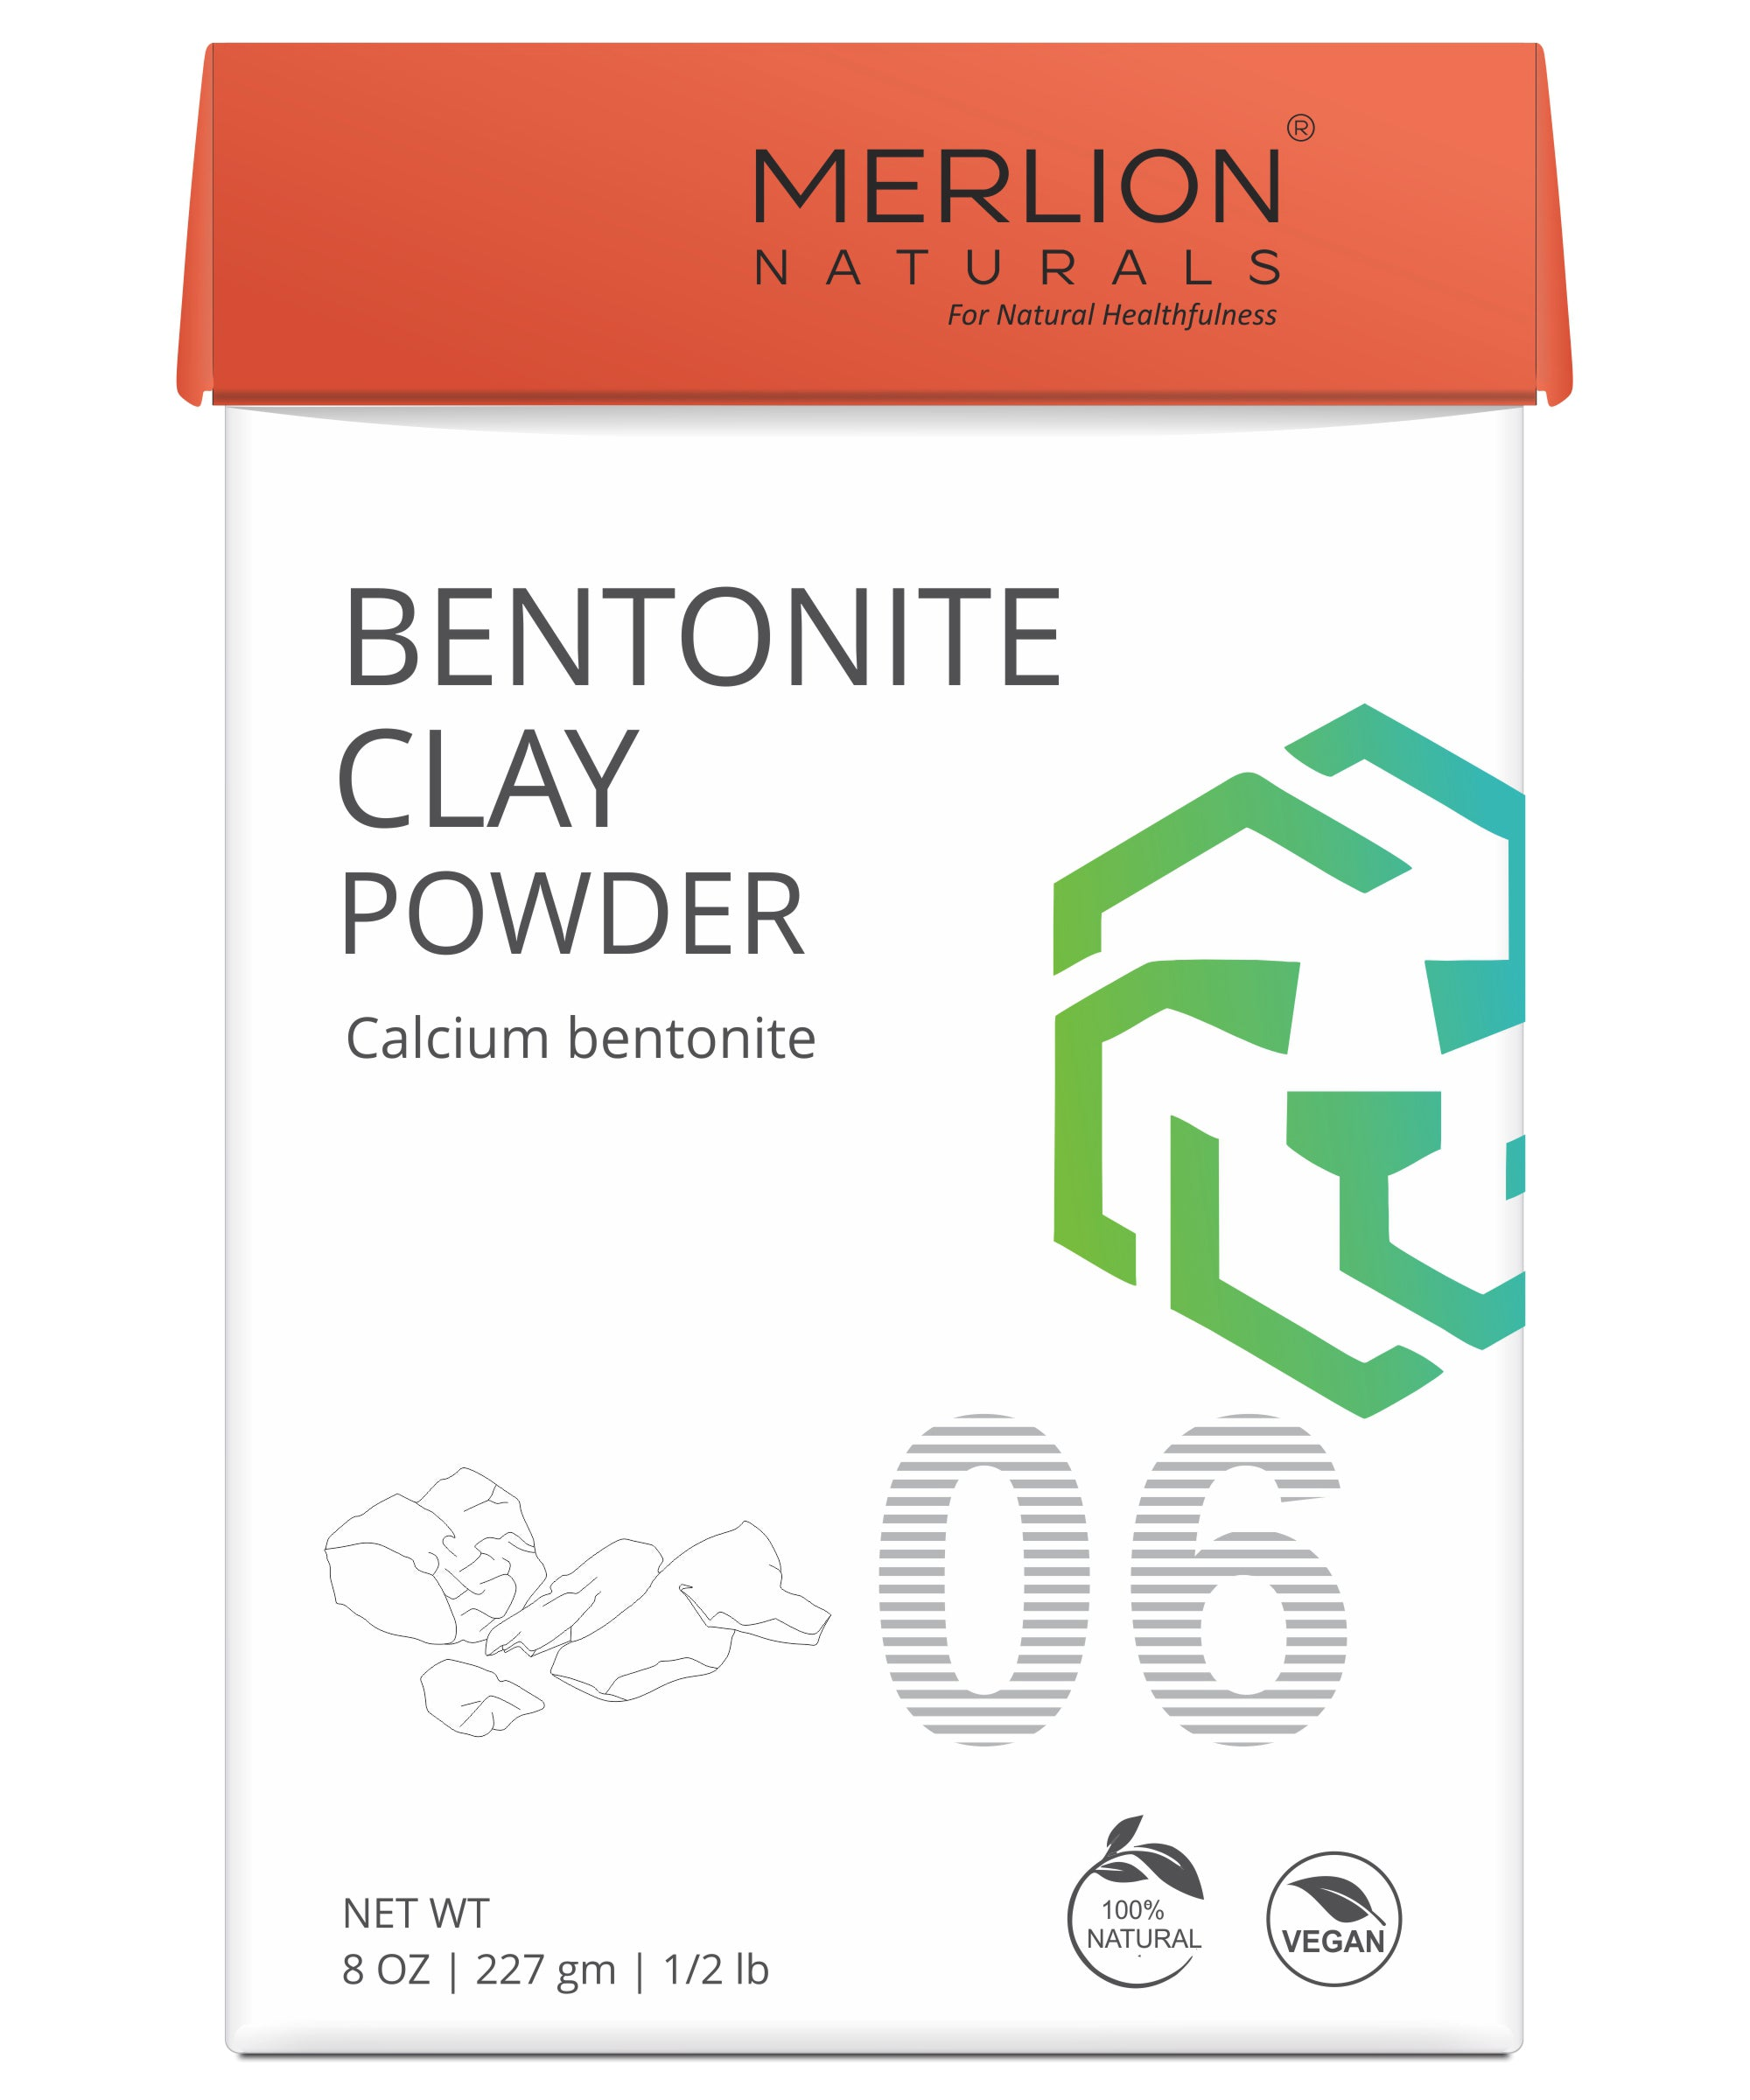 Bentonite Clay Powder | Calcium bentonite